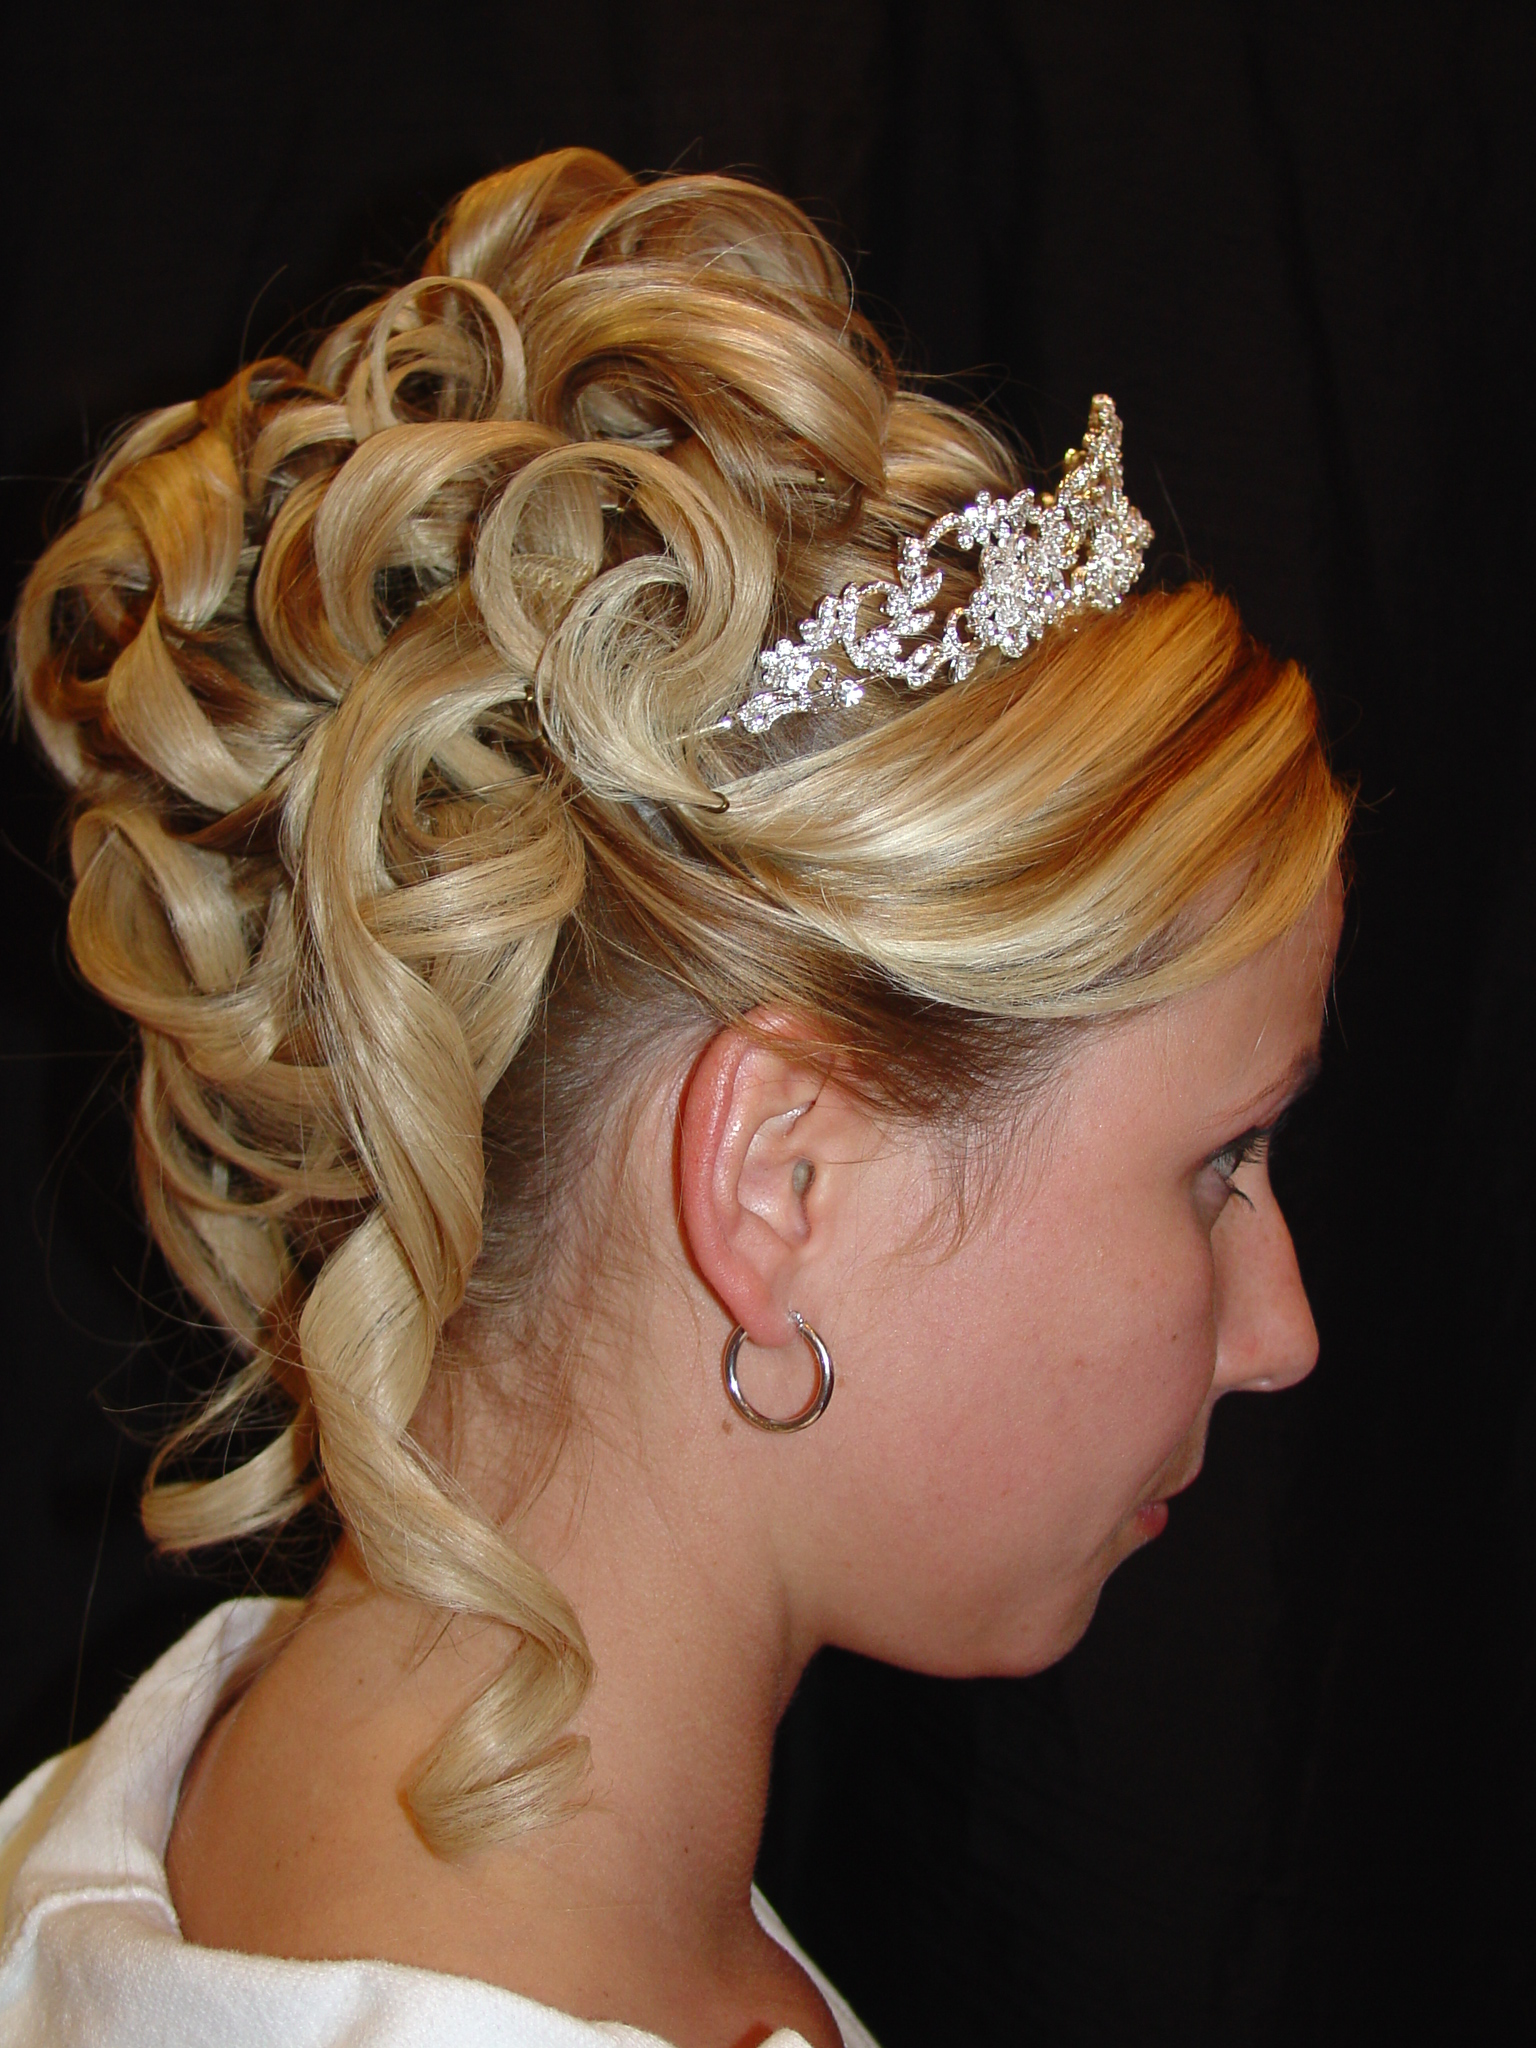 The Most Beautiful Traditional Hairstyle Ideas